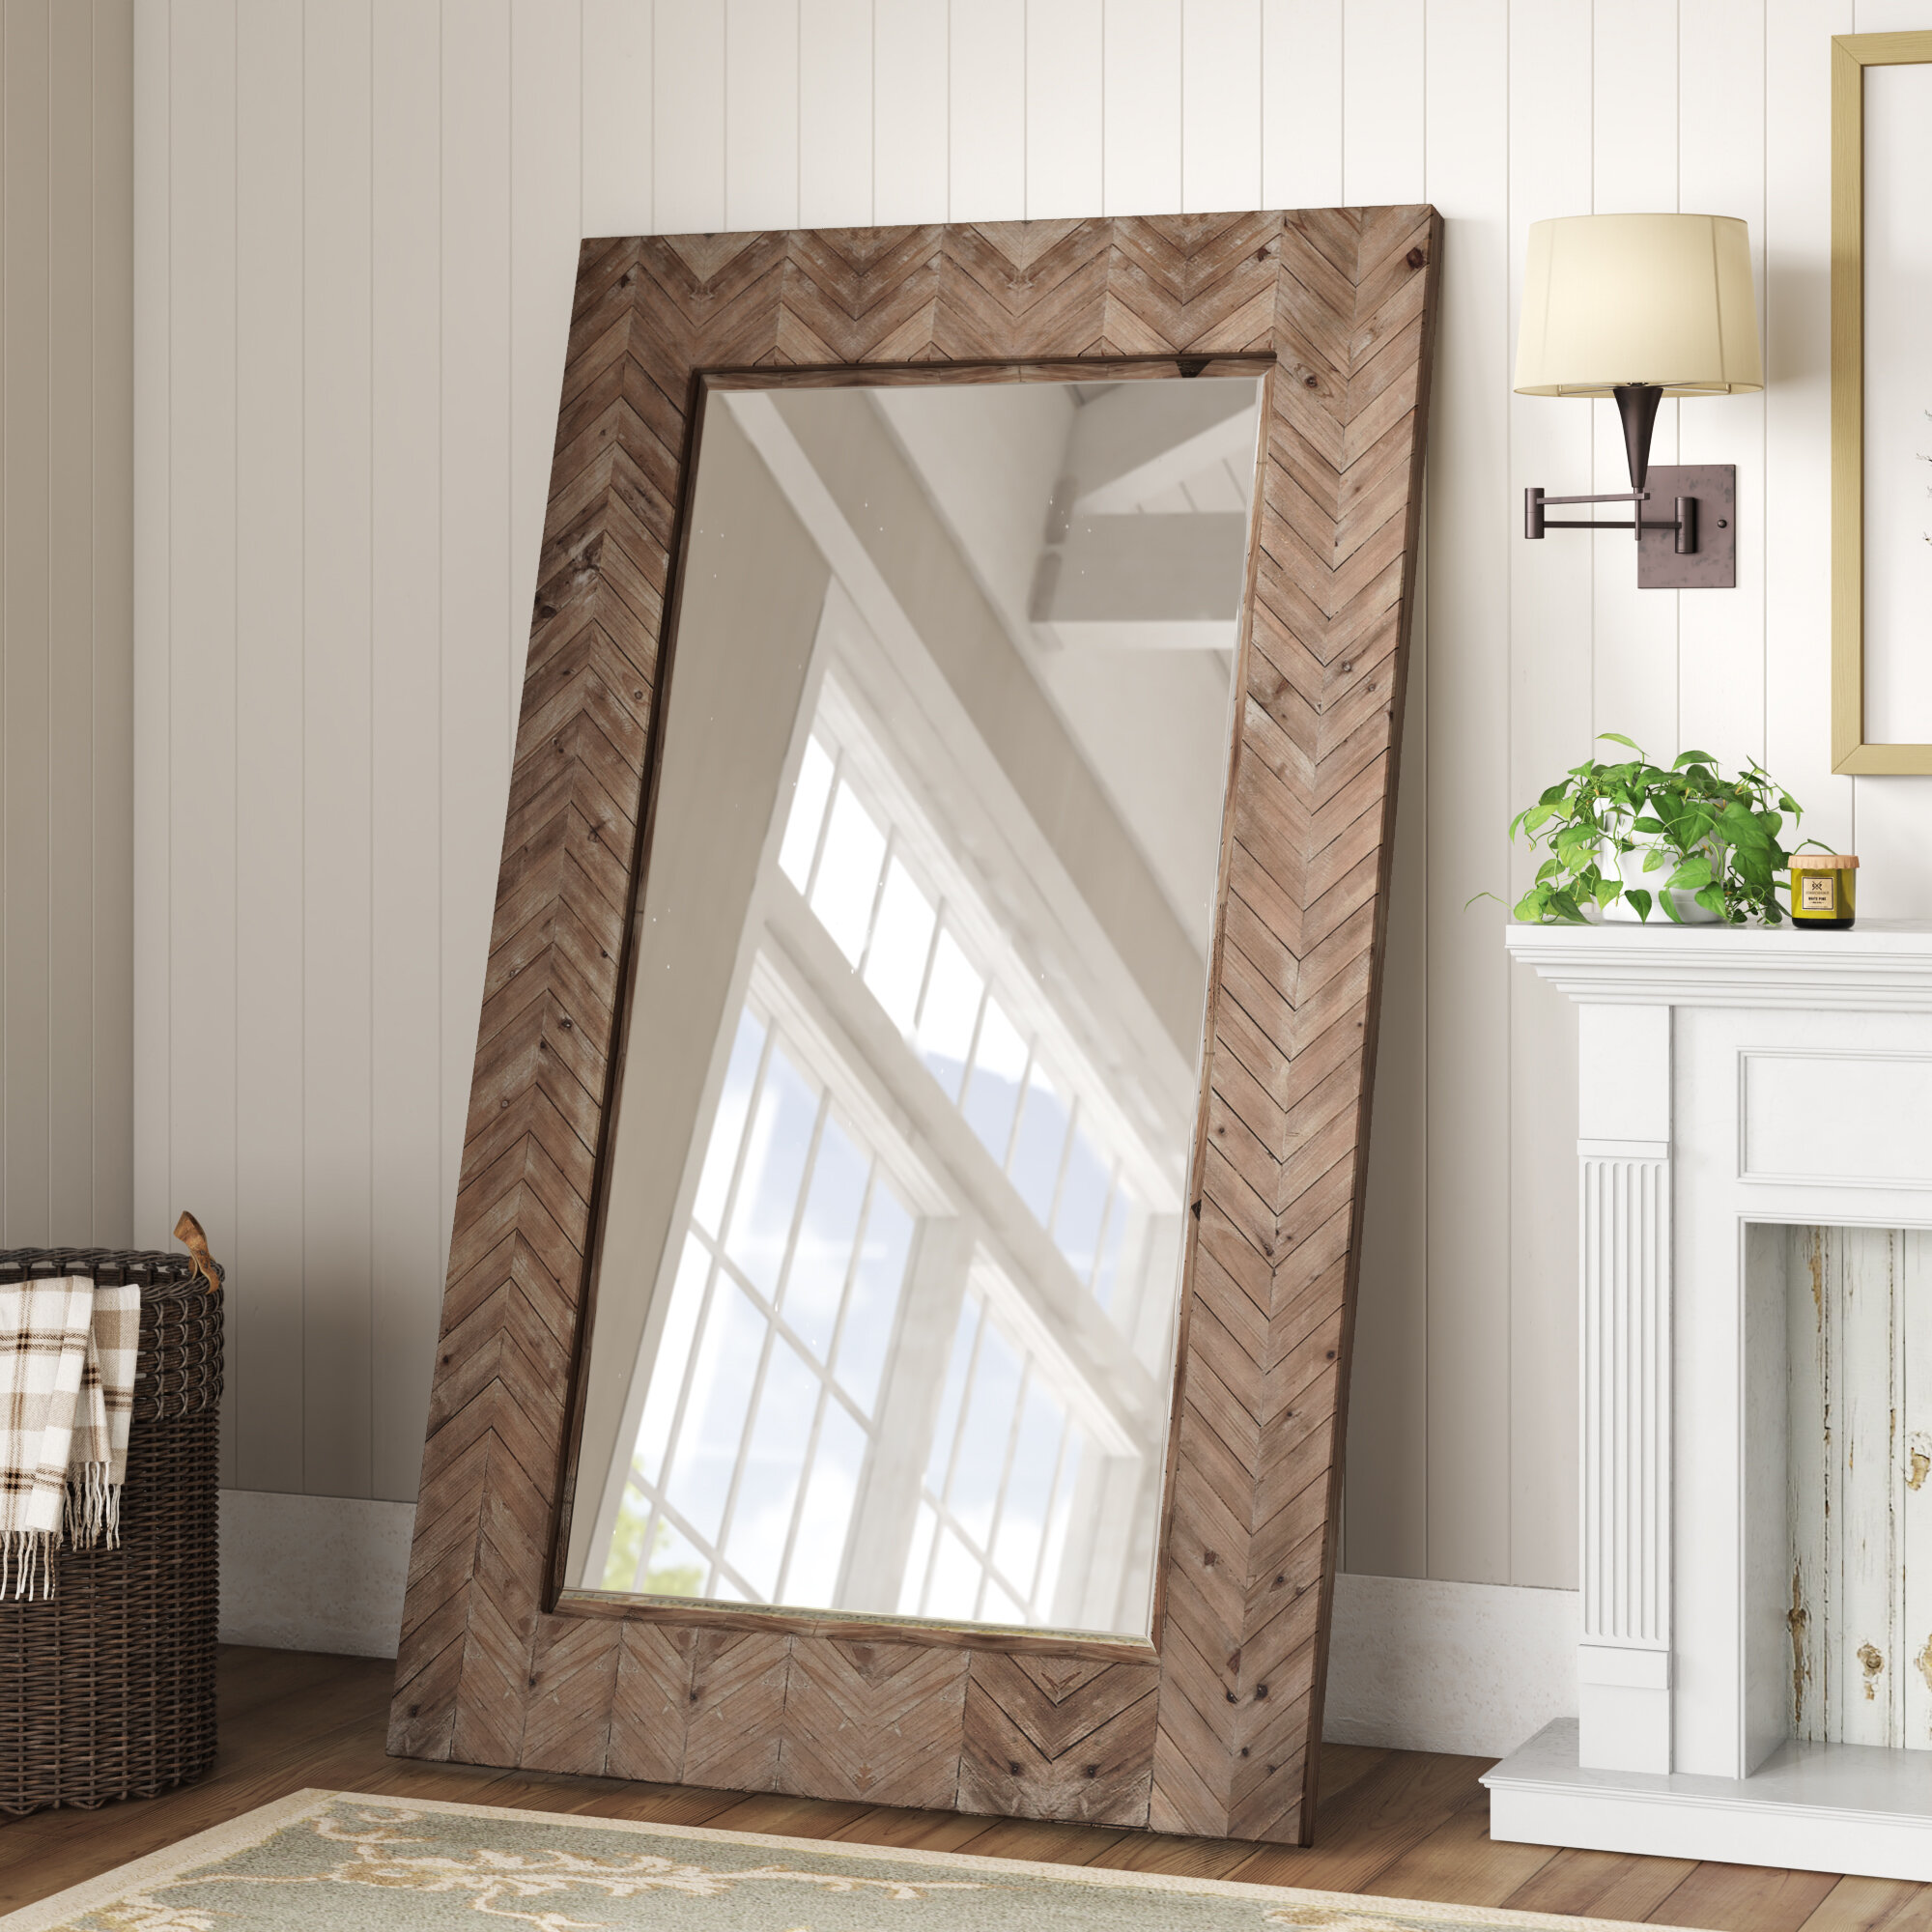 Wood Floor Mirrors You Ll Love In 2021 Wayfair